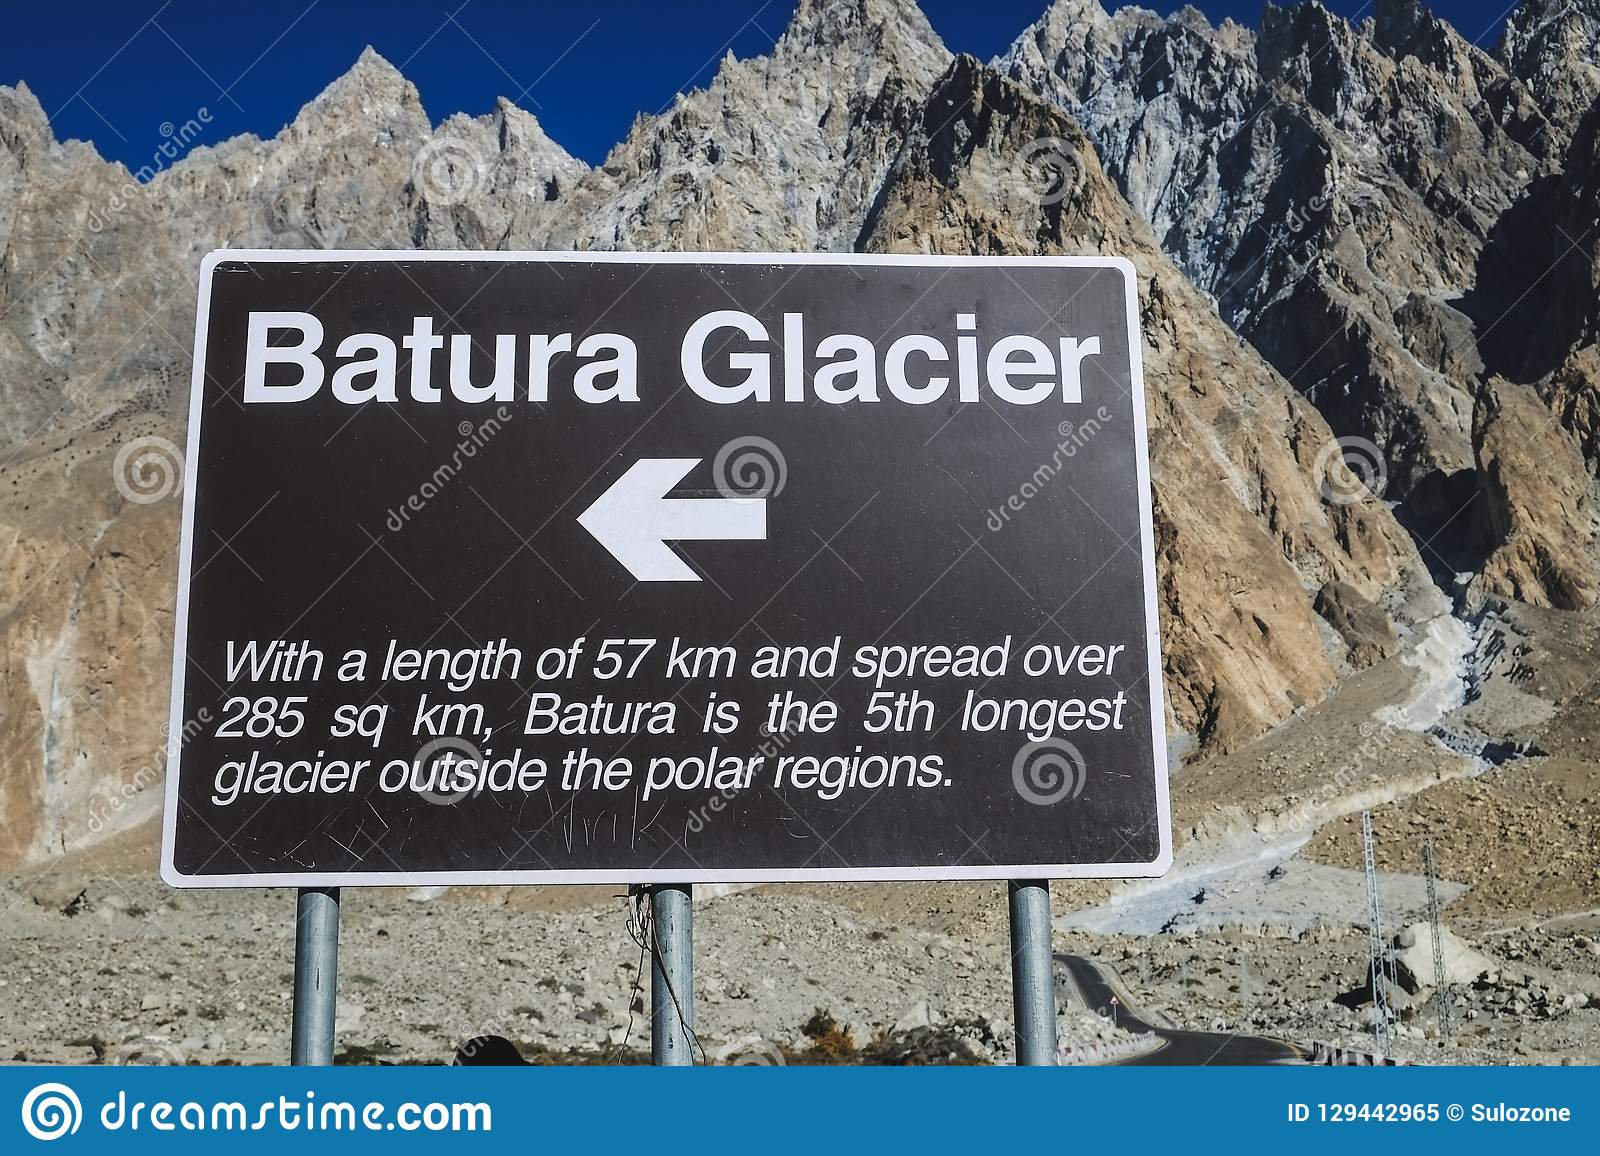 A signpost of direction and information of the Batura Glacier.